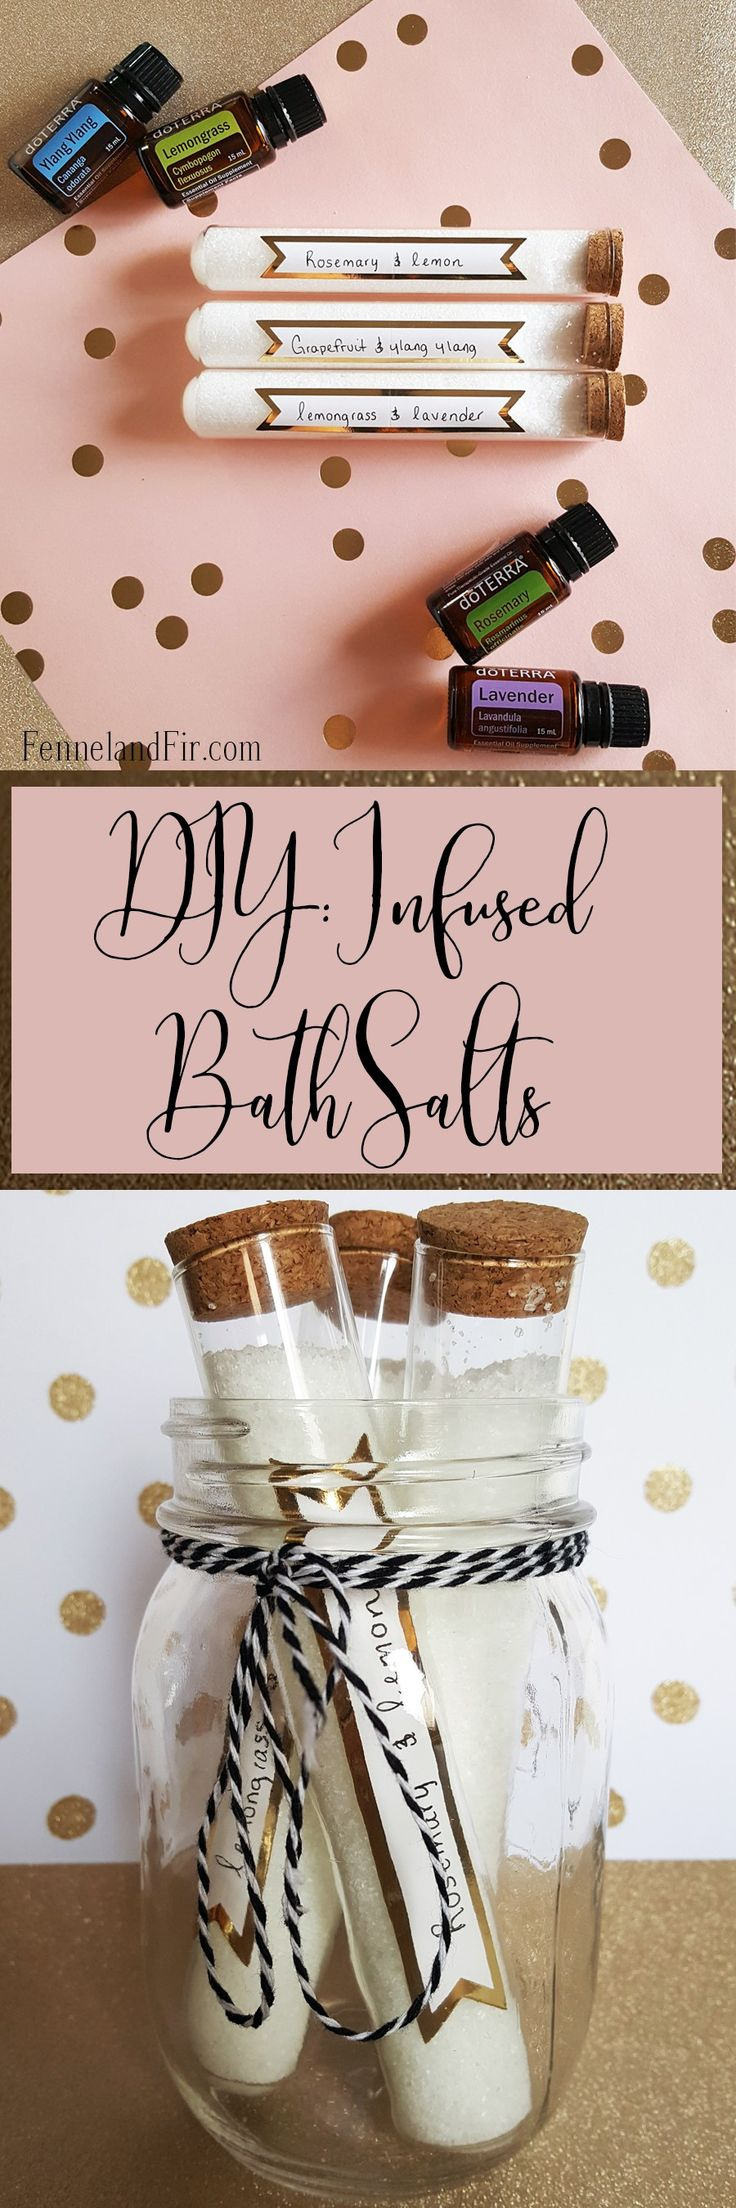 DIY: Infused Bath Salt. Great Last minute holiday gift or diy craft. @fennelandfir